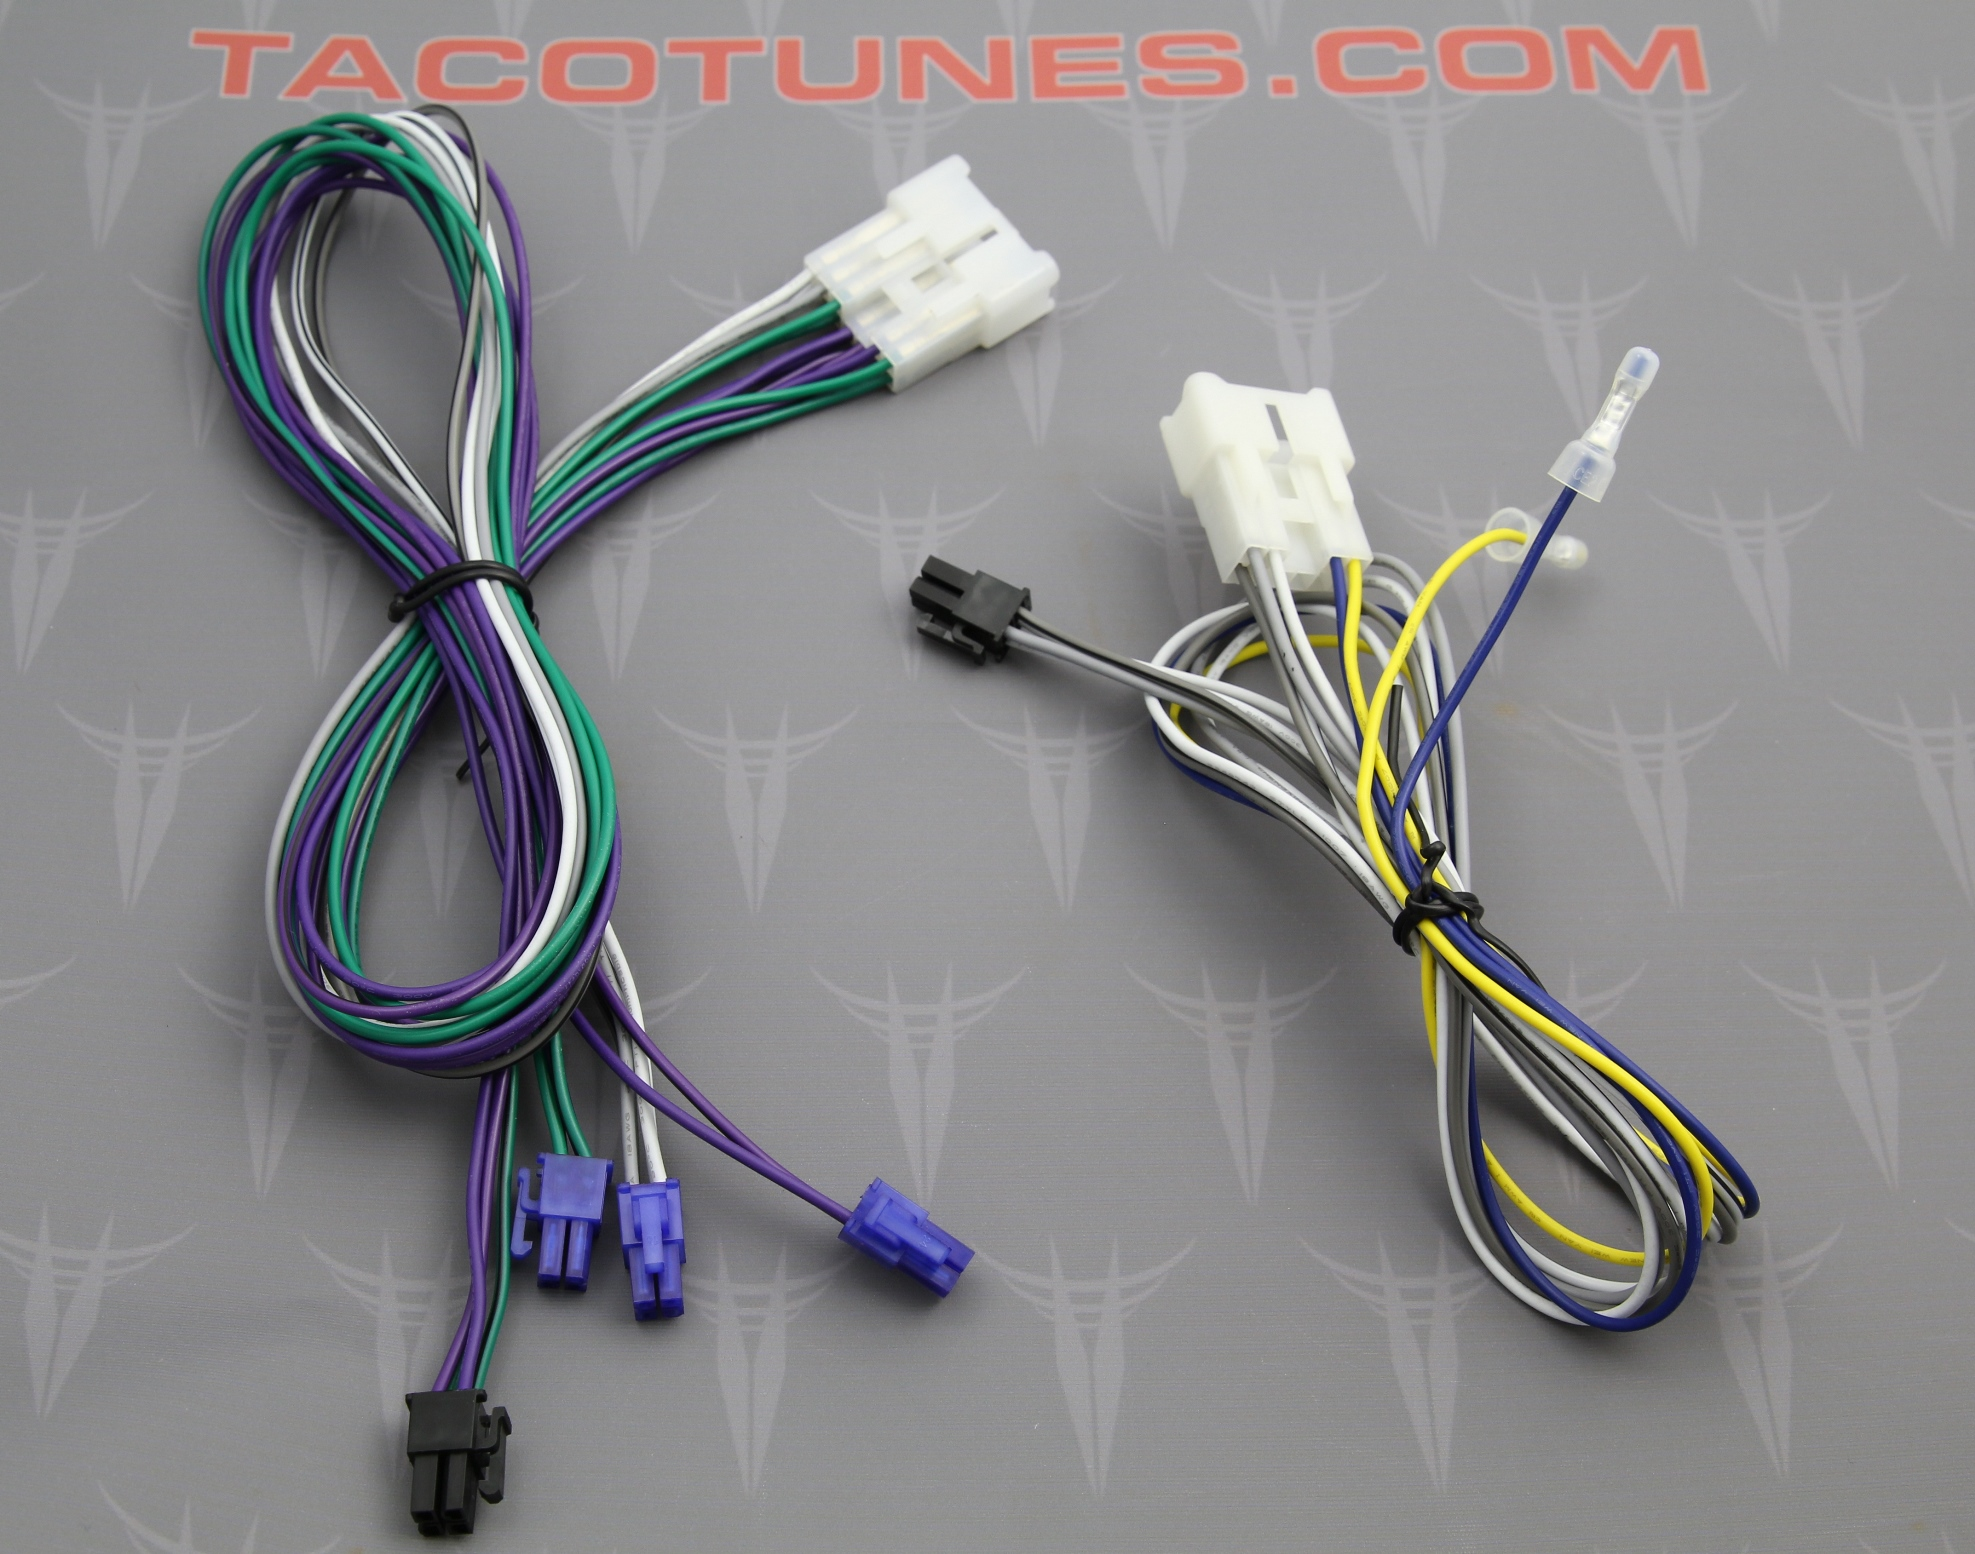 Toyota Tundra Stock Amplifier Wire Harness Adapter Kit 2014 tundra stock amplifier harness interface adapter taco Toyota Stereo Wiring Diagram at mifinder.co